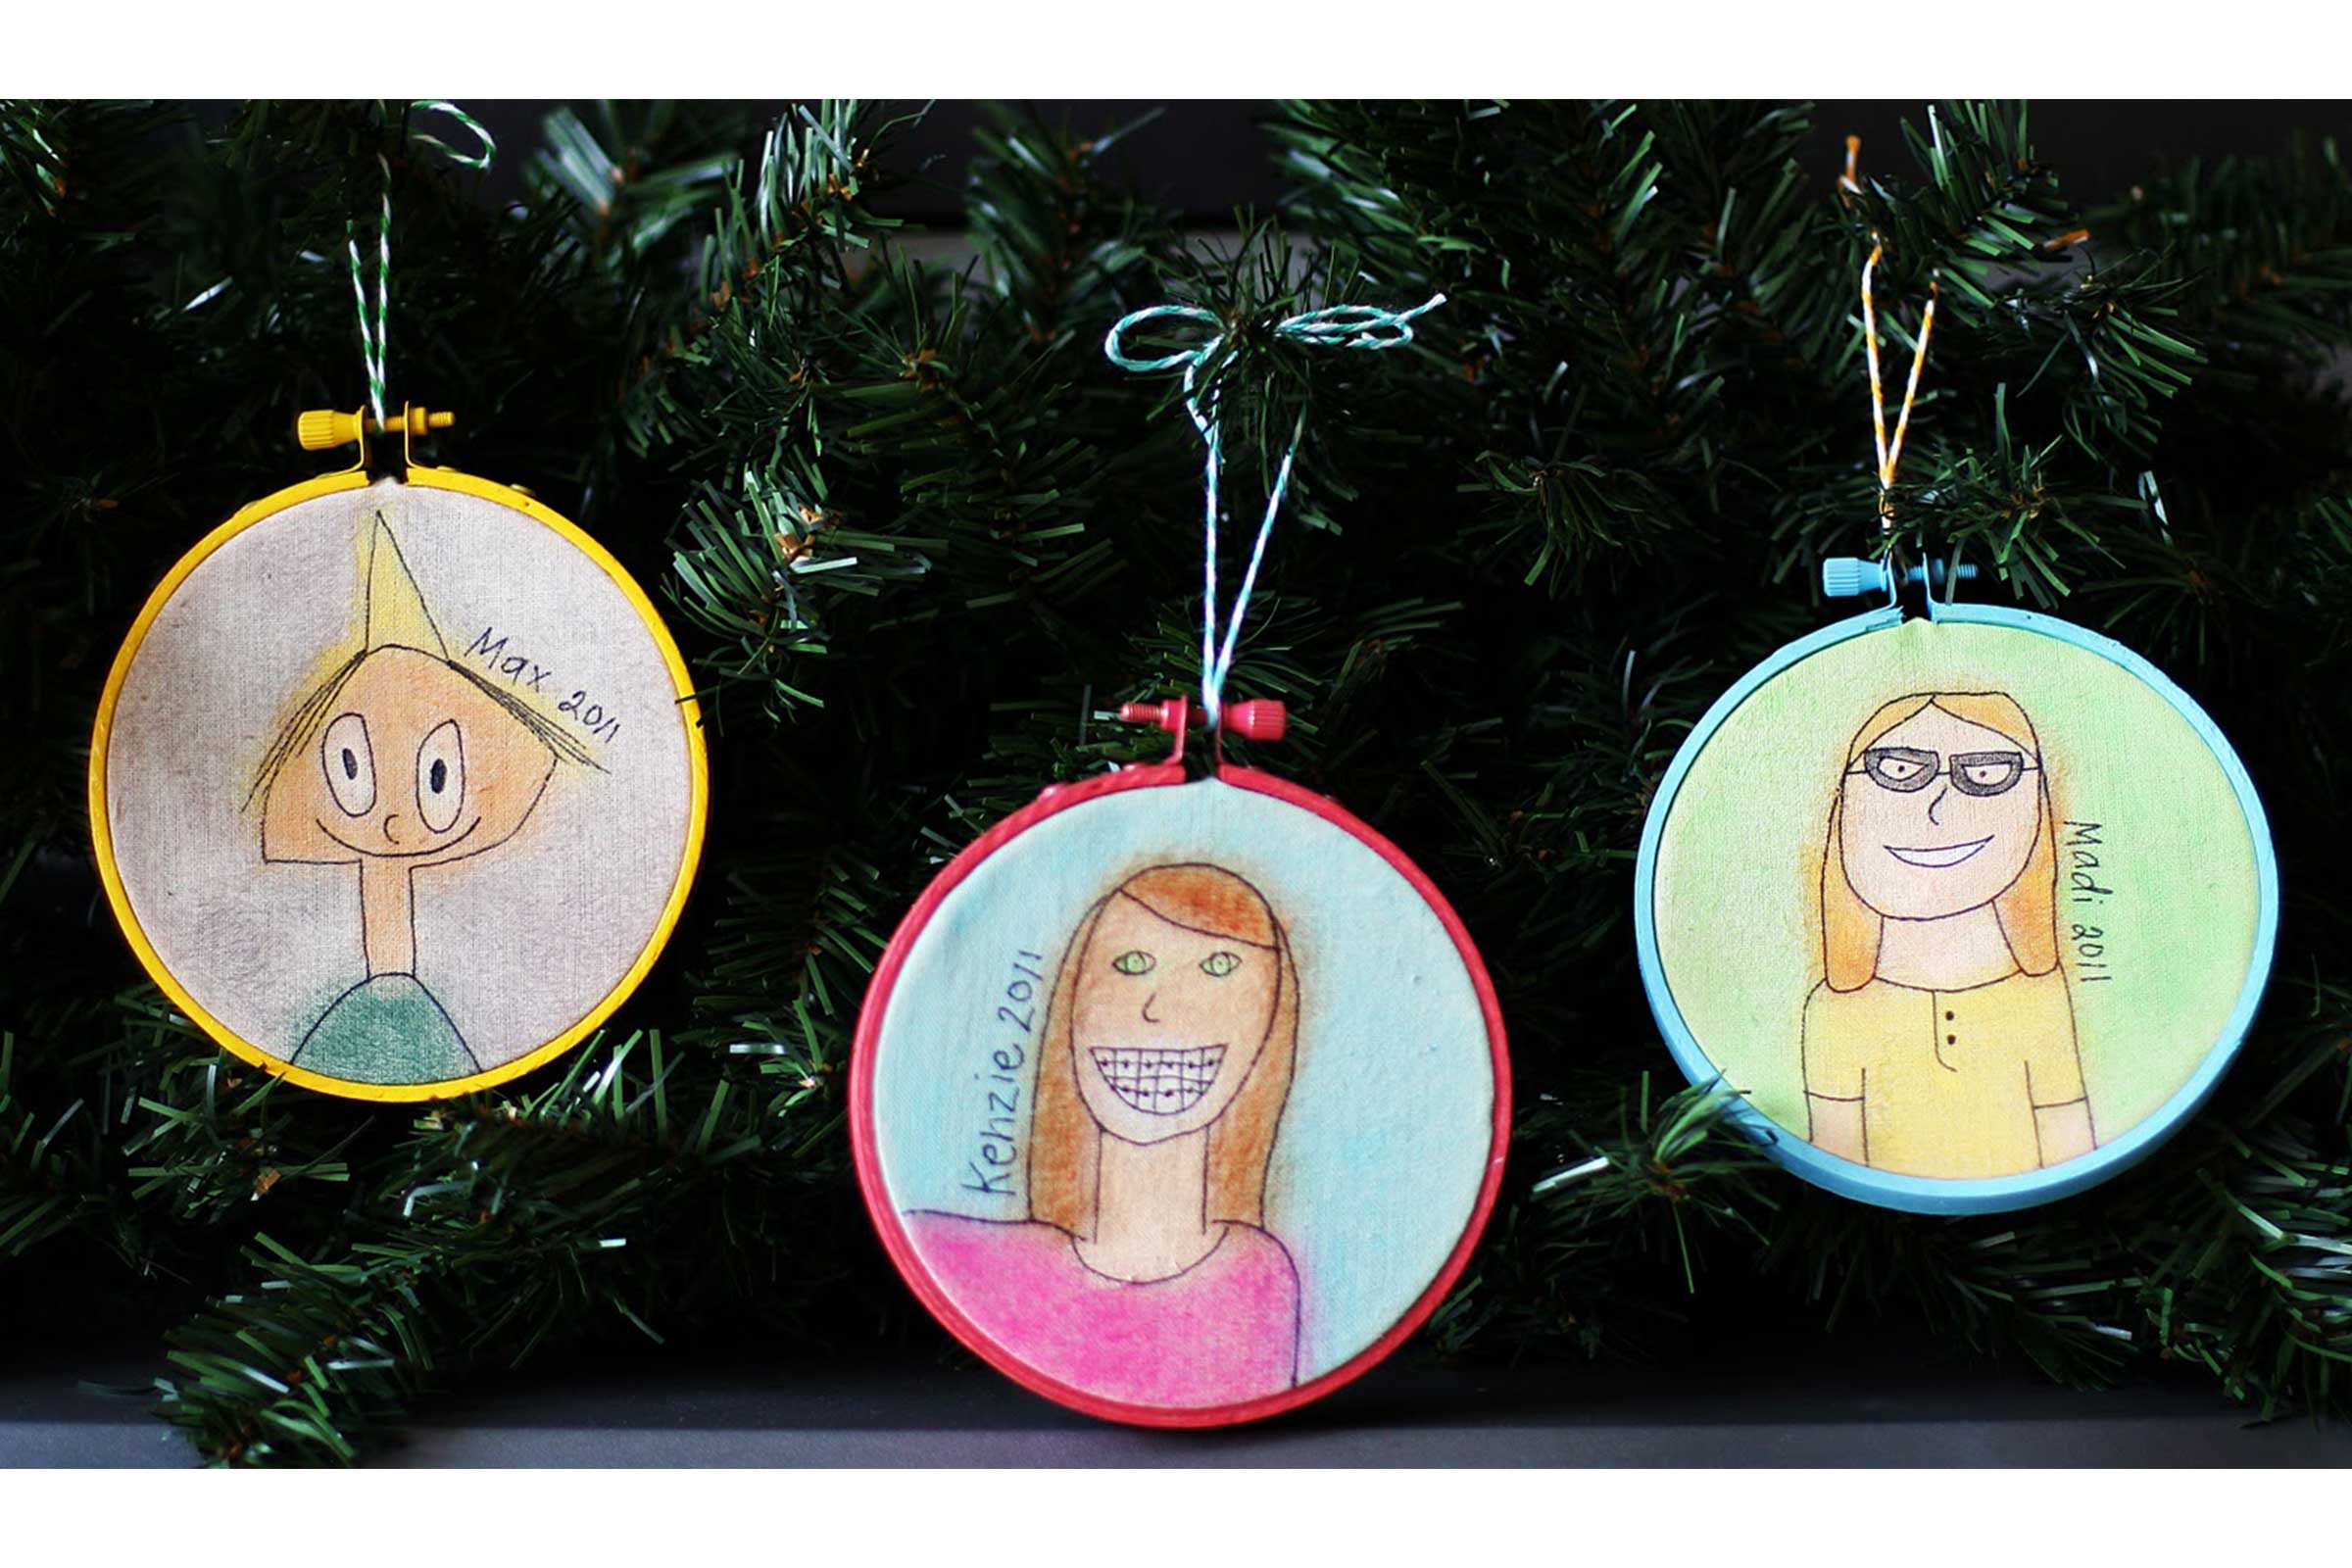 Yearly christmas ornaments - Self Portrait